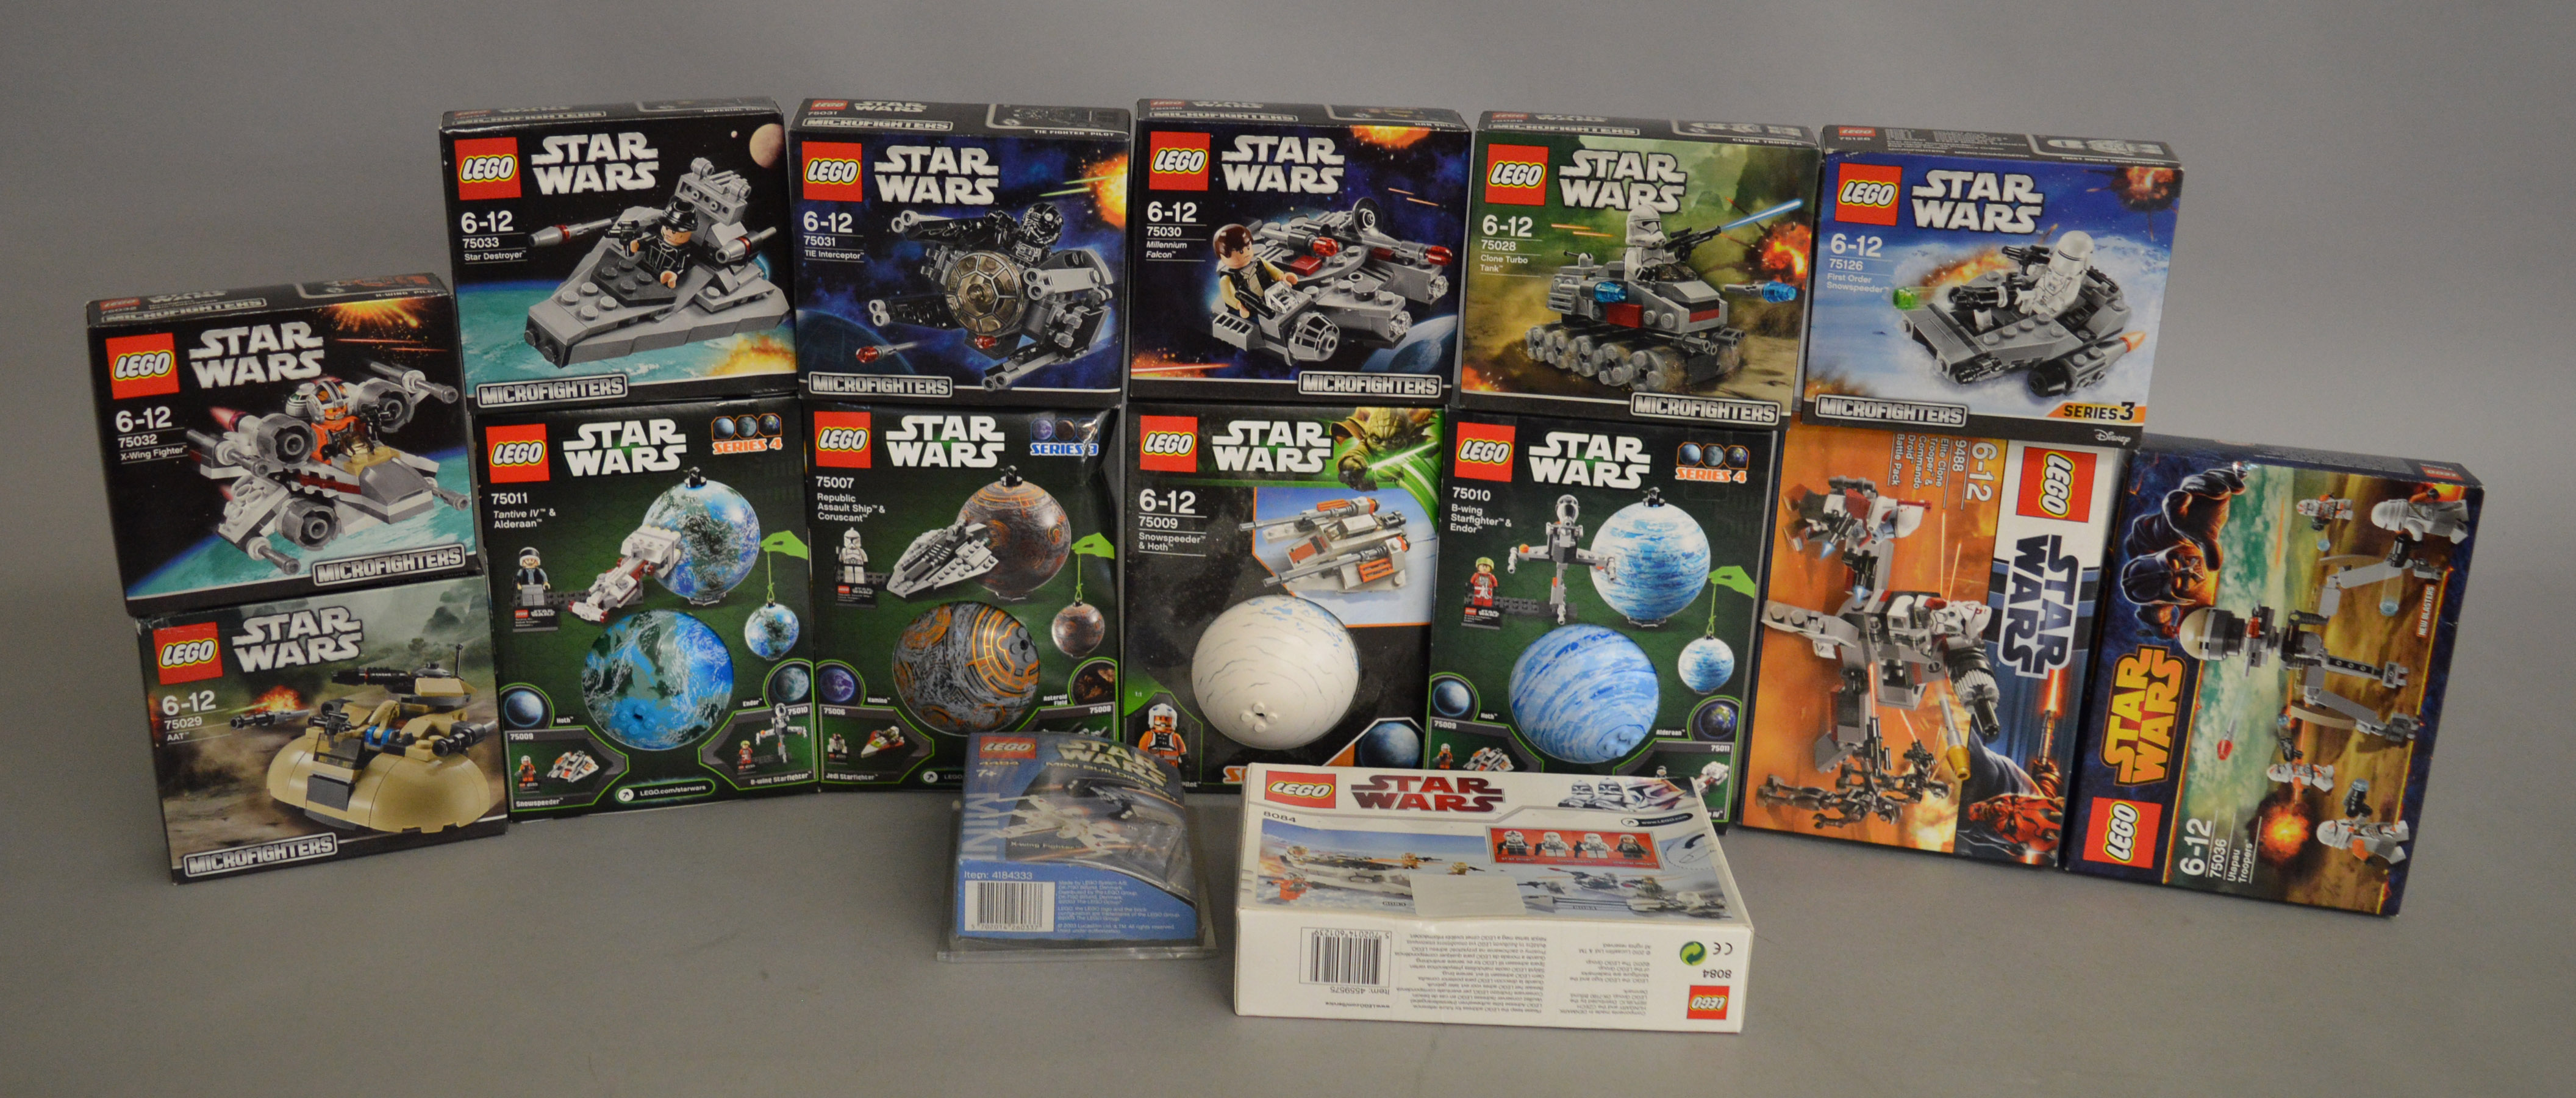 Lot 38 - Quantity of smaller Lego Star Wars sets, including Microfighters,